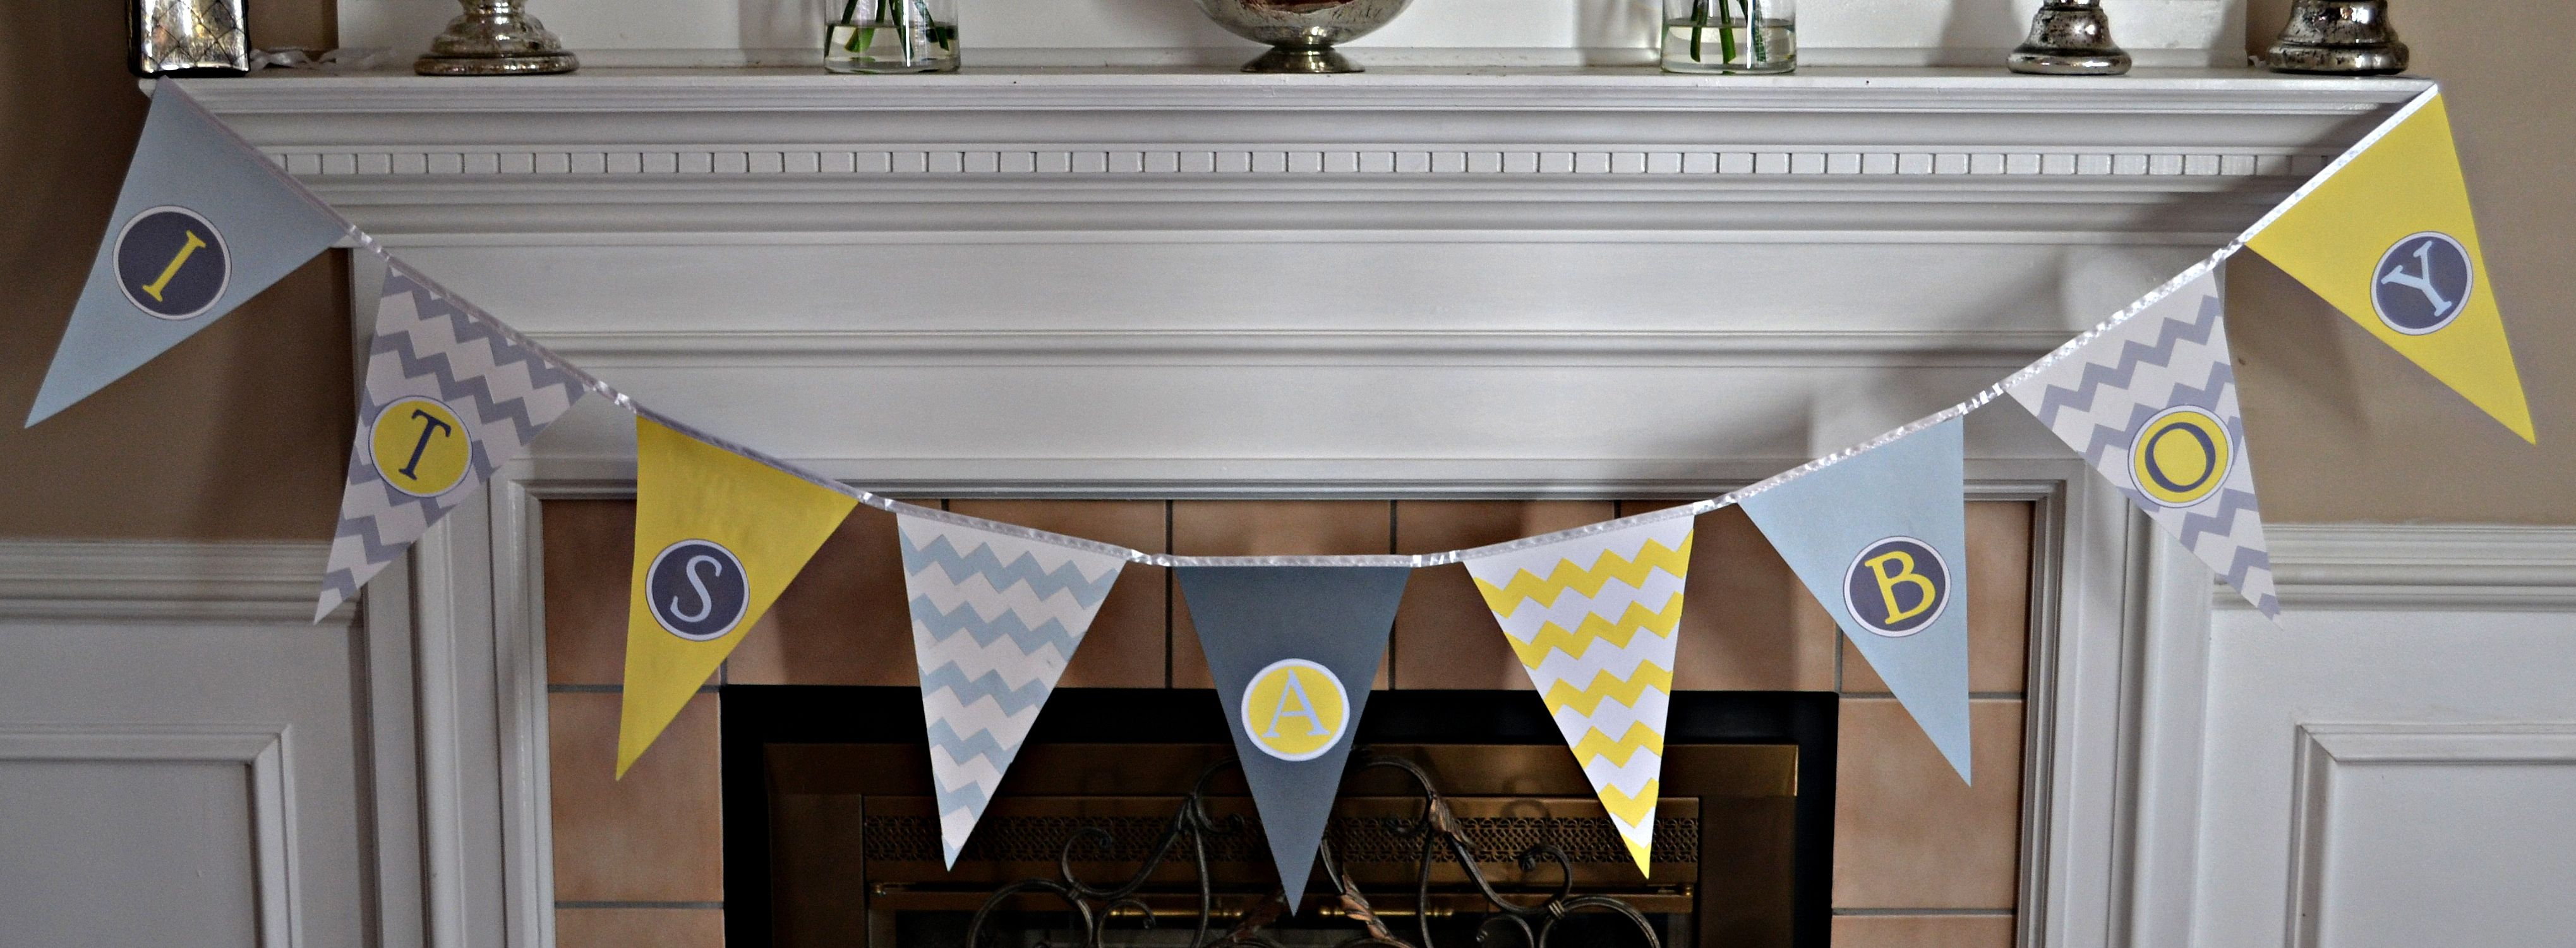 Diy baby shower pennant banner craft corner pinterest diy baby